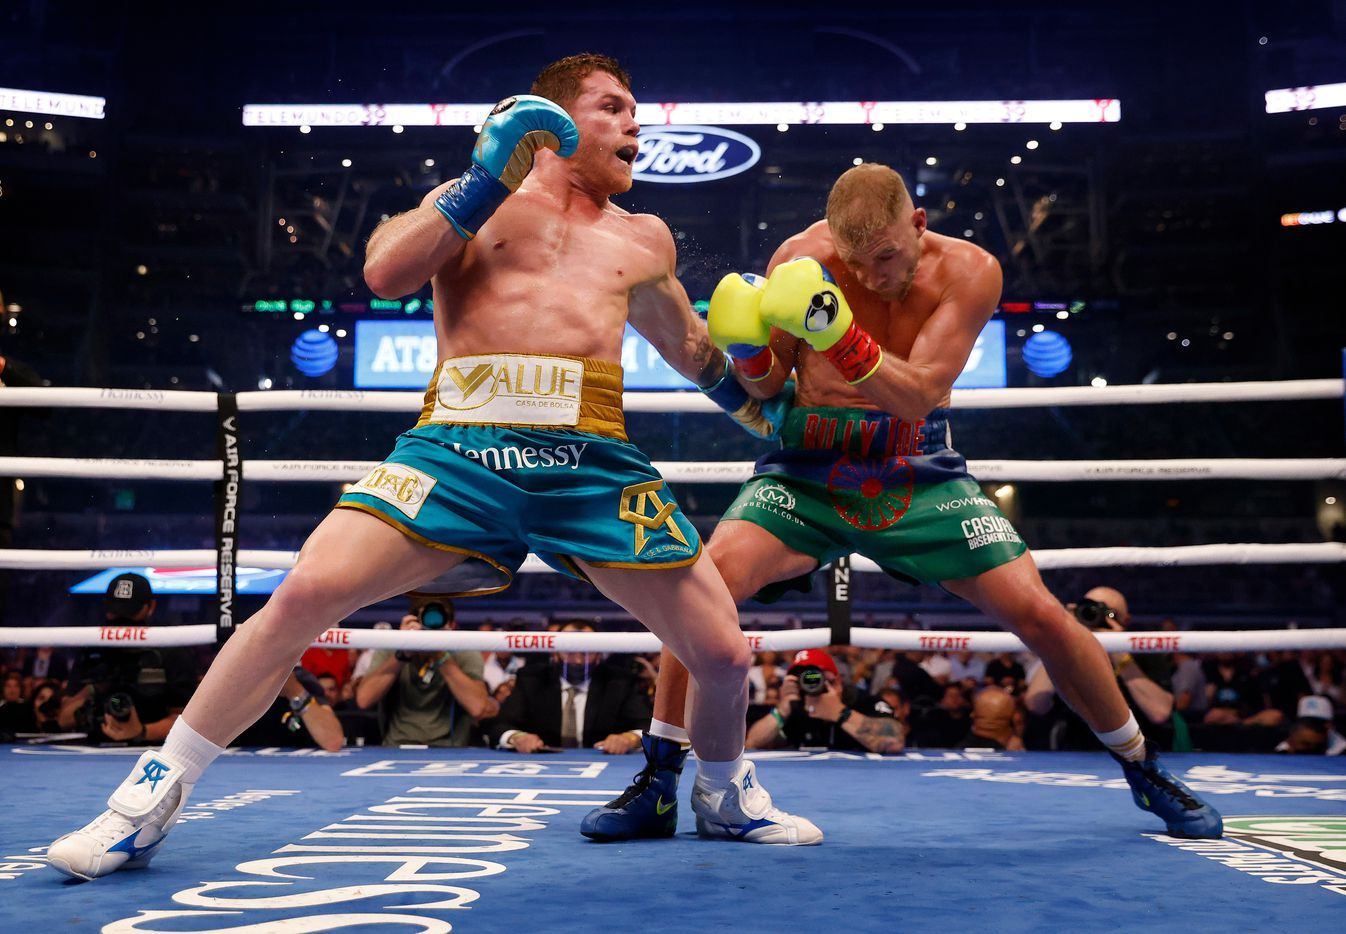 Boxer Canelo Alvarez (left) lands a punch on Billy Joe Saunders during their super middleweight title fight at AT&T Stadium in Arlington, Saturday, May 8, 2021. Saunders couldn't go on in the ninth round because he sustained an eye injury and could not see. (Tom Fox/The Dallas Morning News)